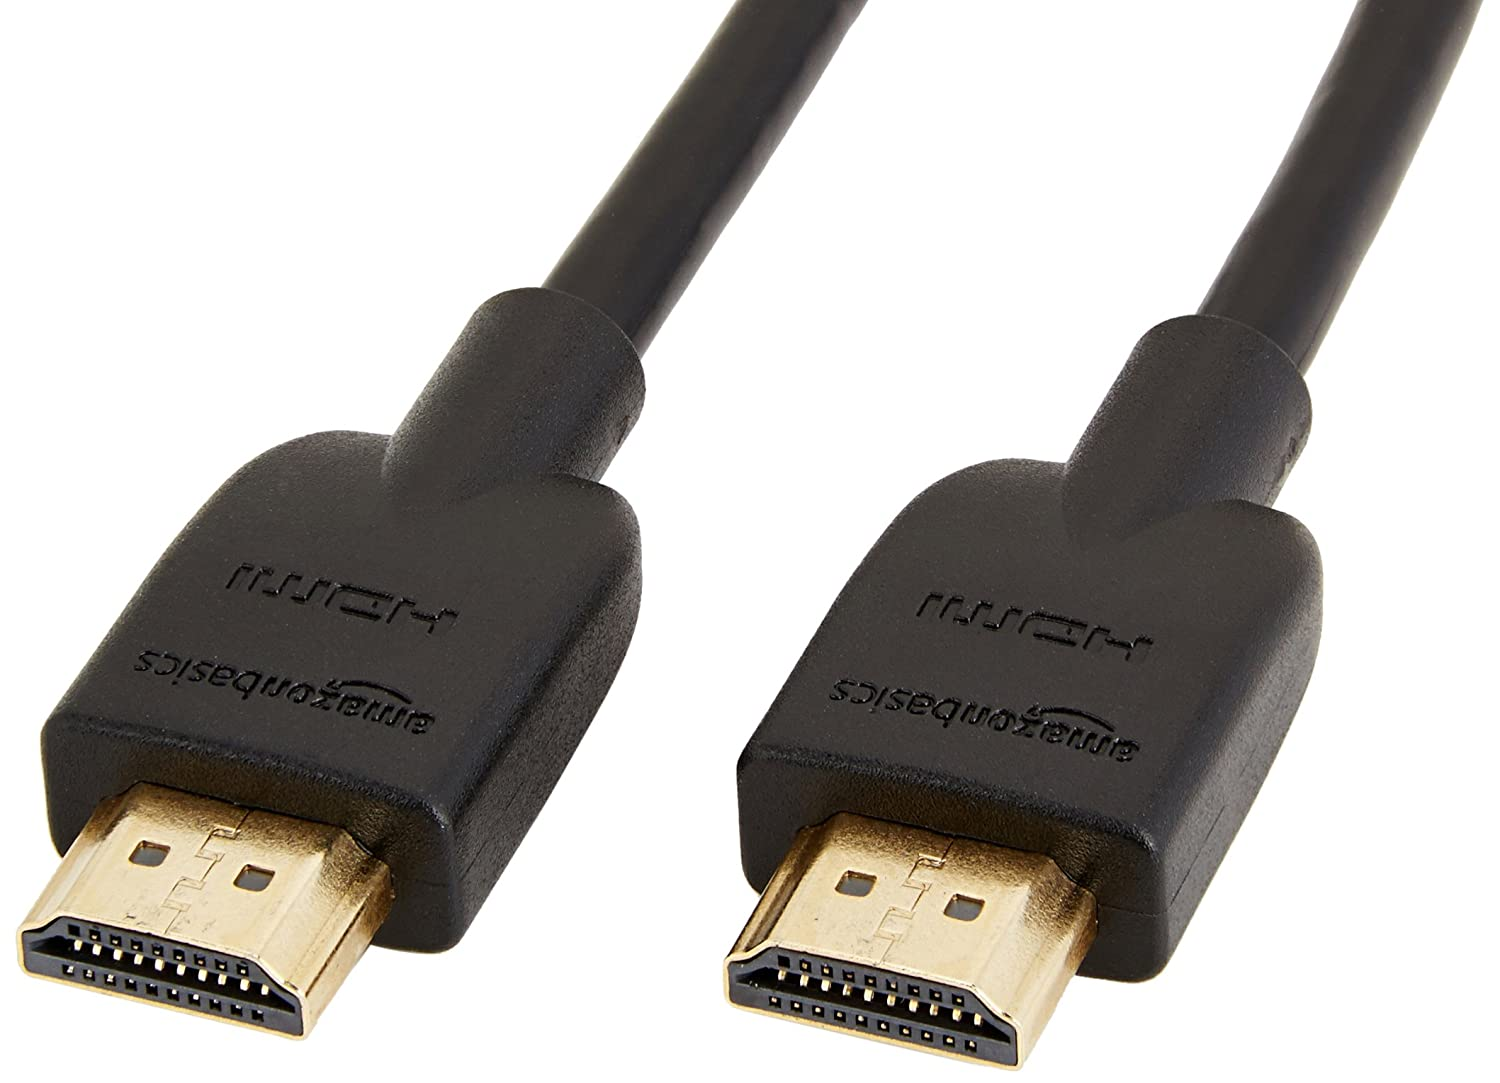 AmazonBasics CL3 Rated HDMI Cable - 6-Feet, 10-Pack